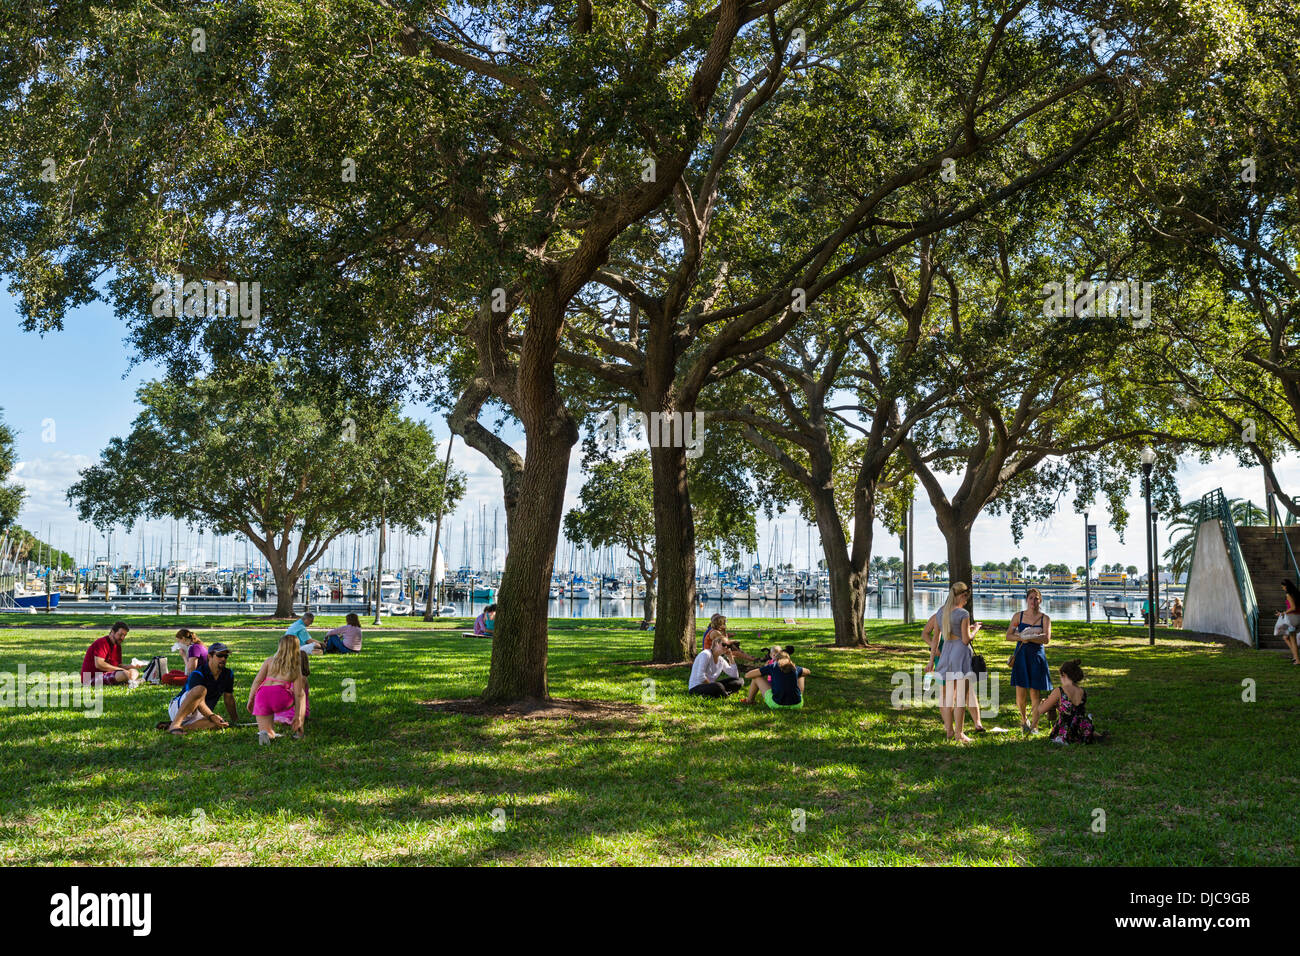 People picnicking on the grass at Progress Energy Park in downtown St Petersburg, Florida, USA - Stock Image